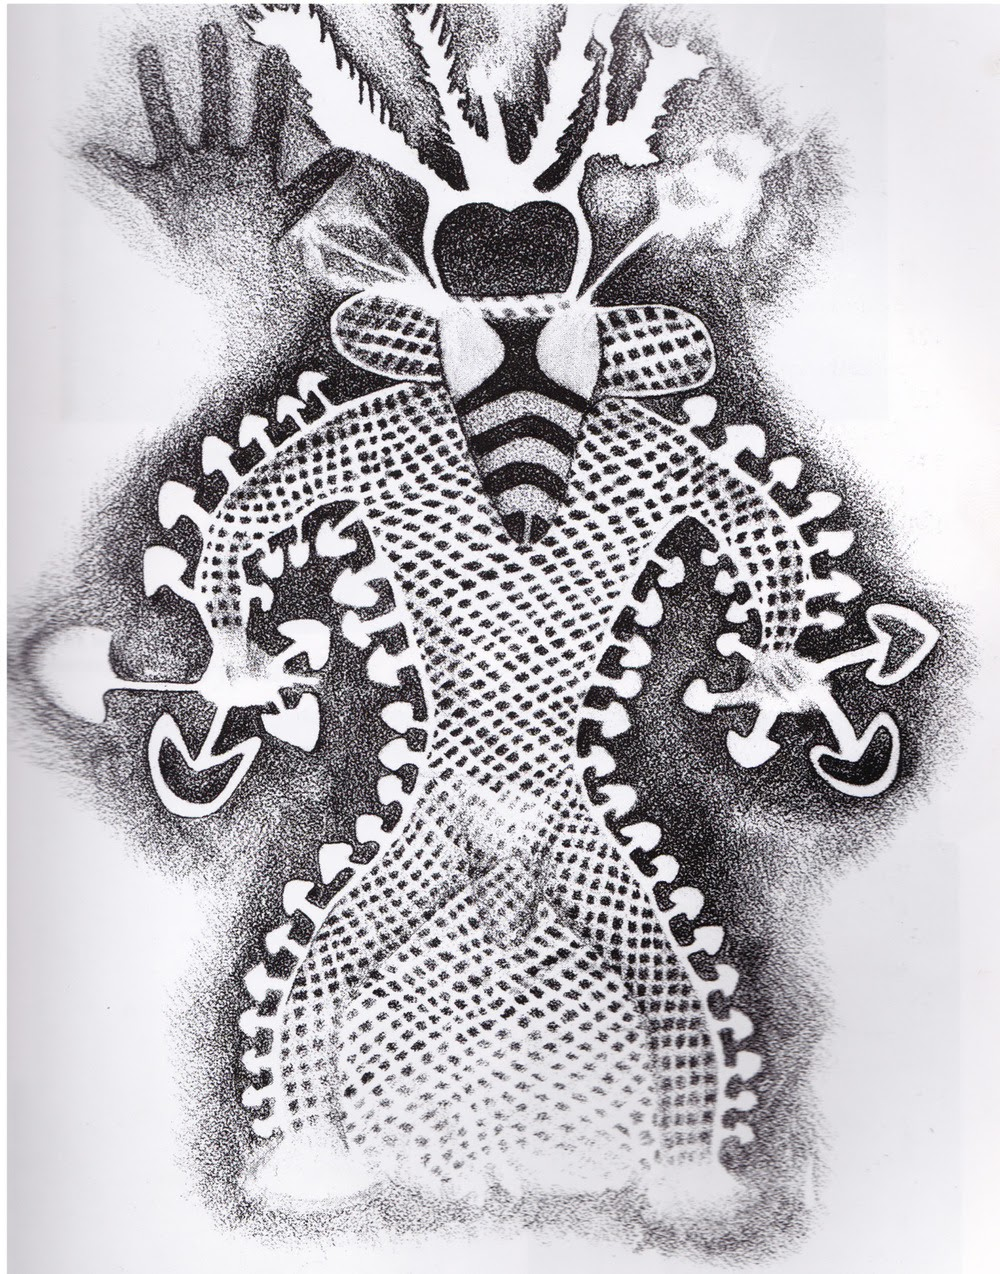 black and white cave drawing of shaman with bee head and mushrooms sprouting all around body